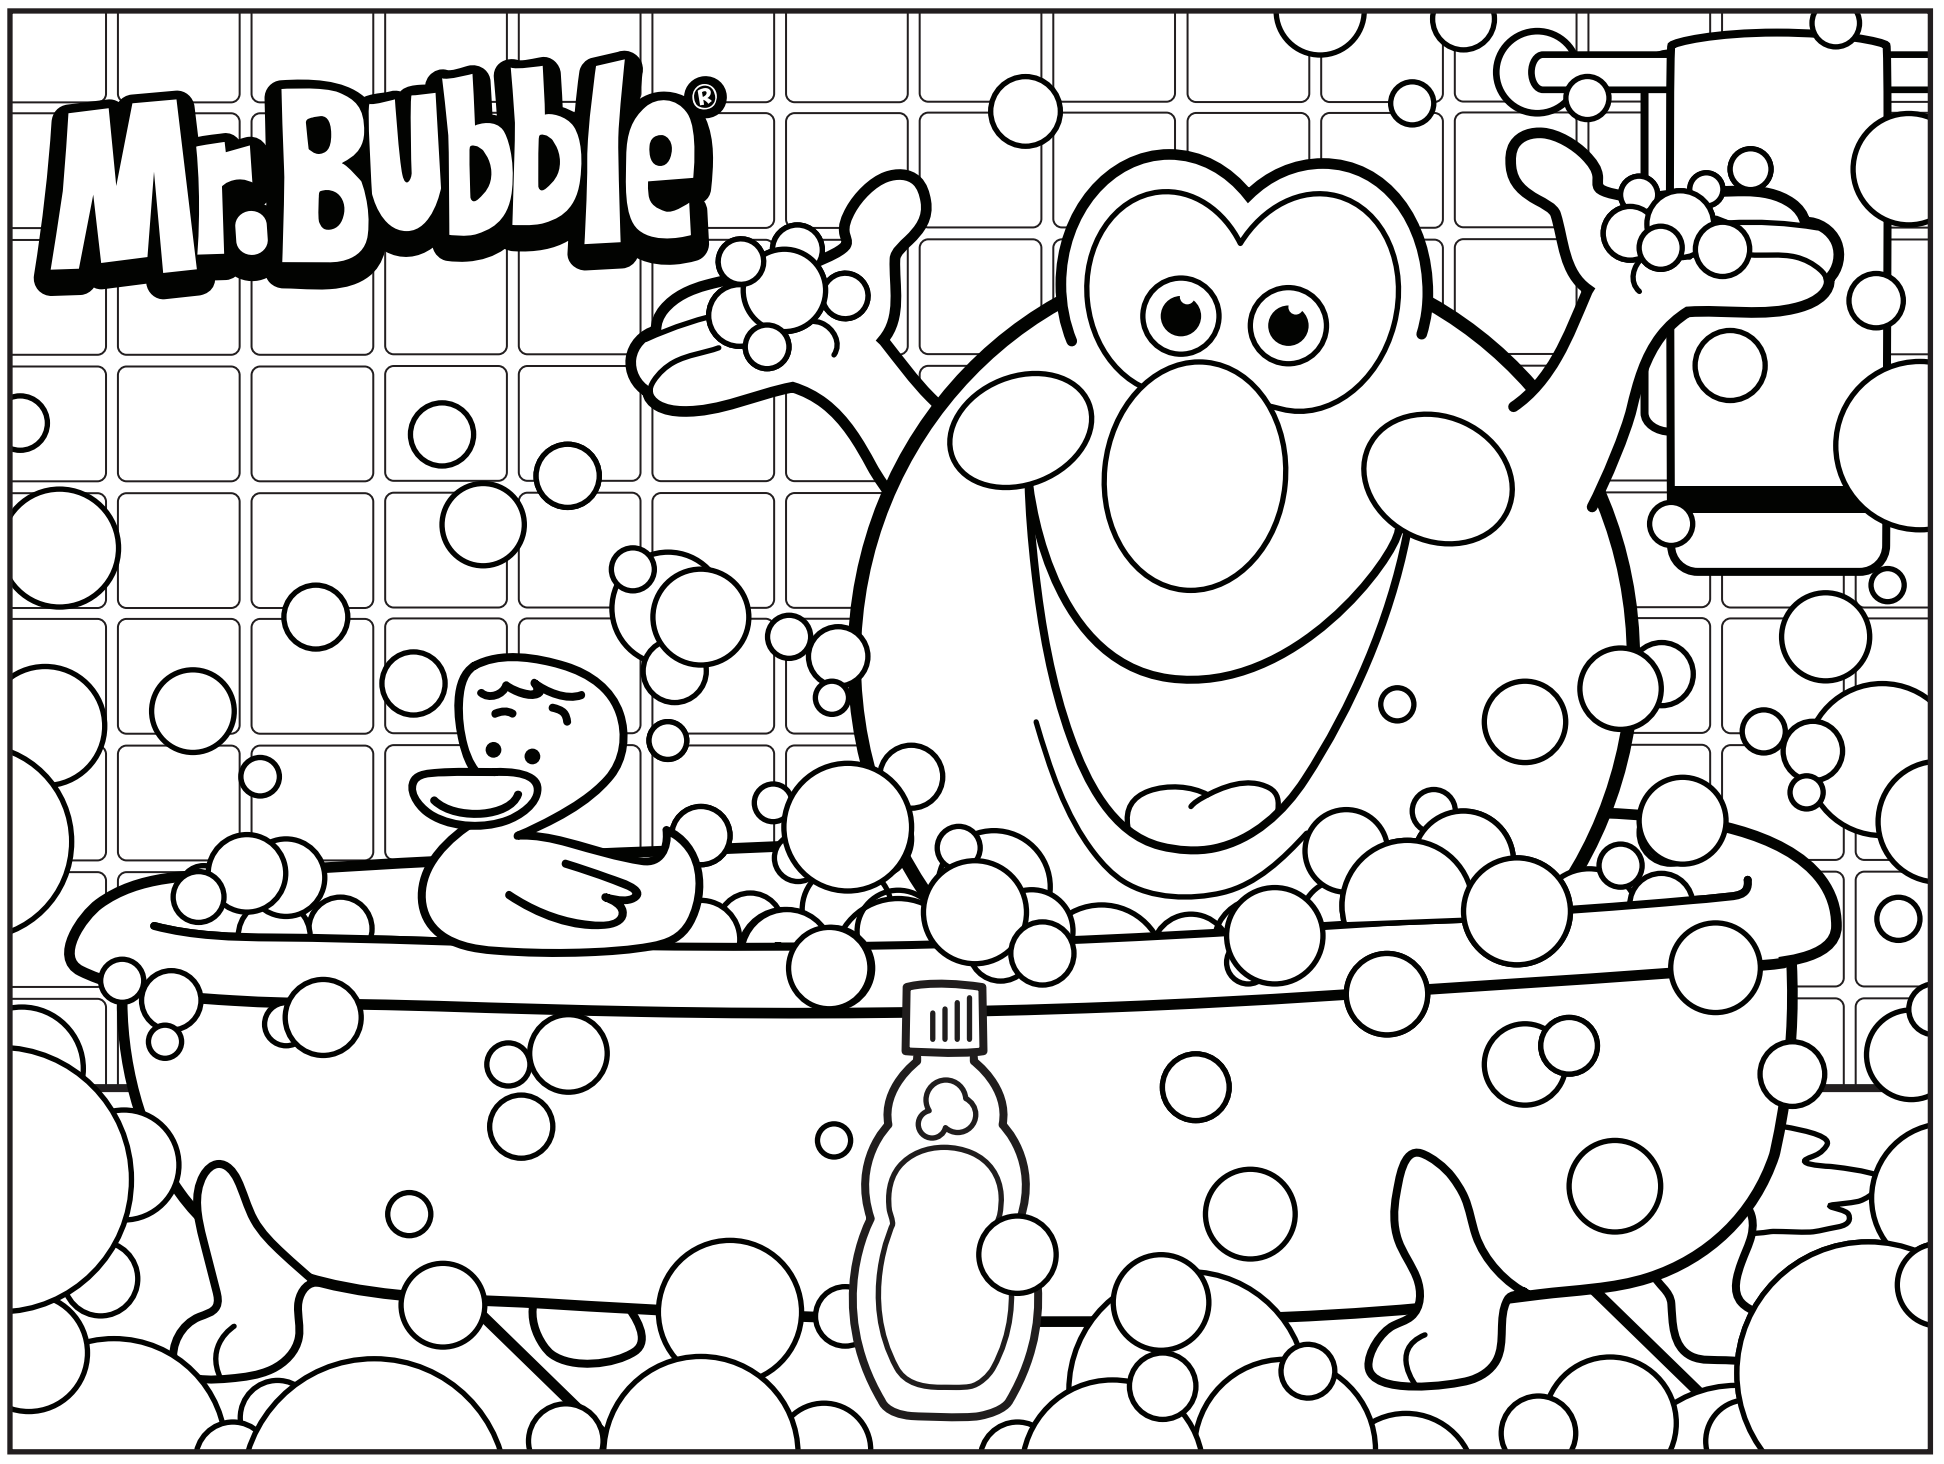 3d coloring pages - Mr Bubble Coloring Page Bath Time